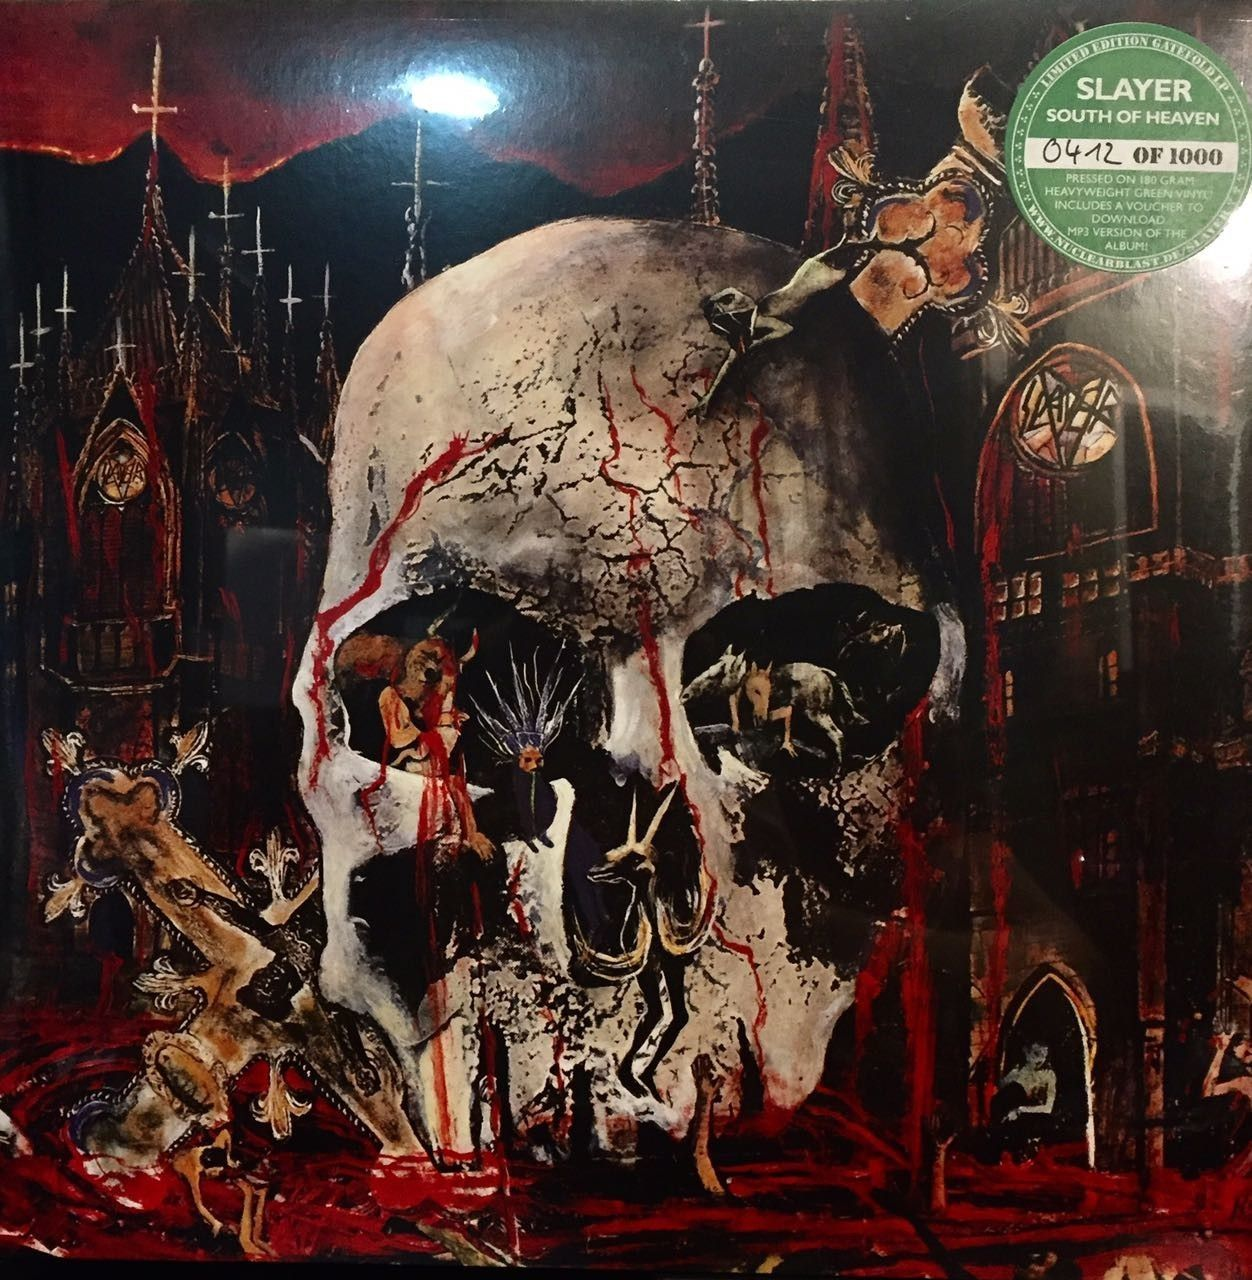 LP – Slayer ‎– South of Heaven ( LP Green Vinyl Numerado Limitado Importado Americano